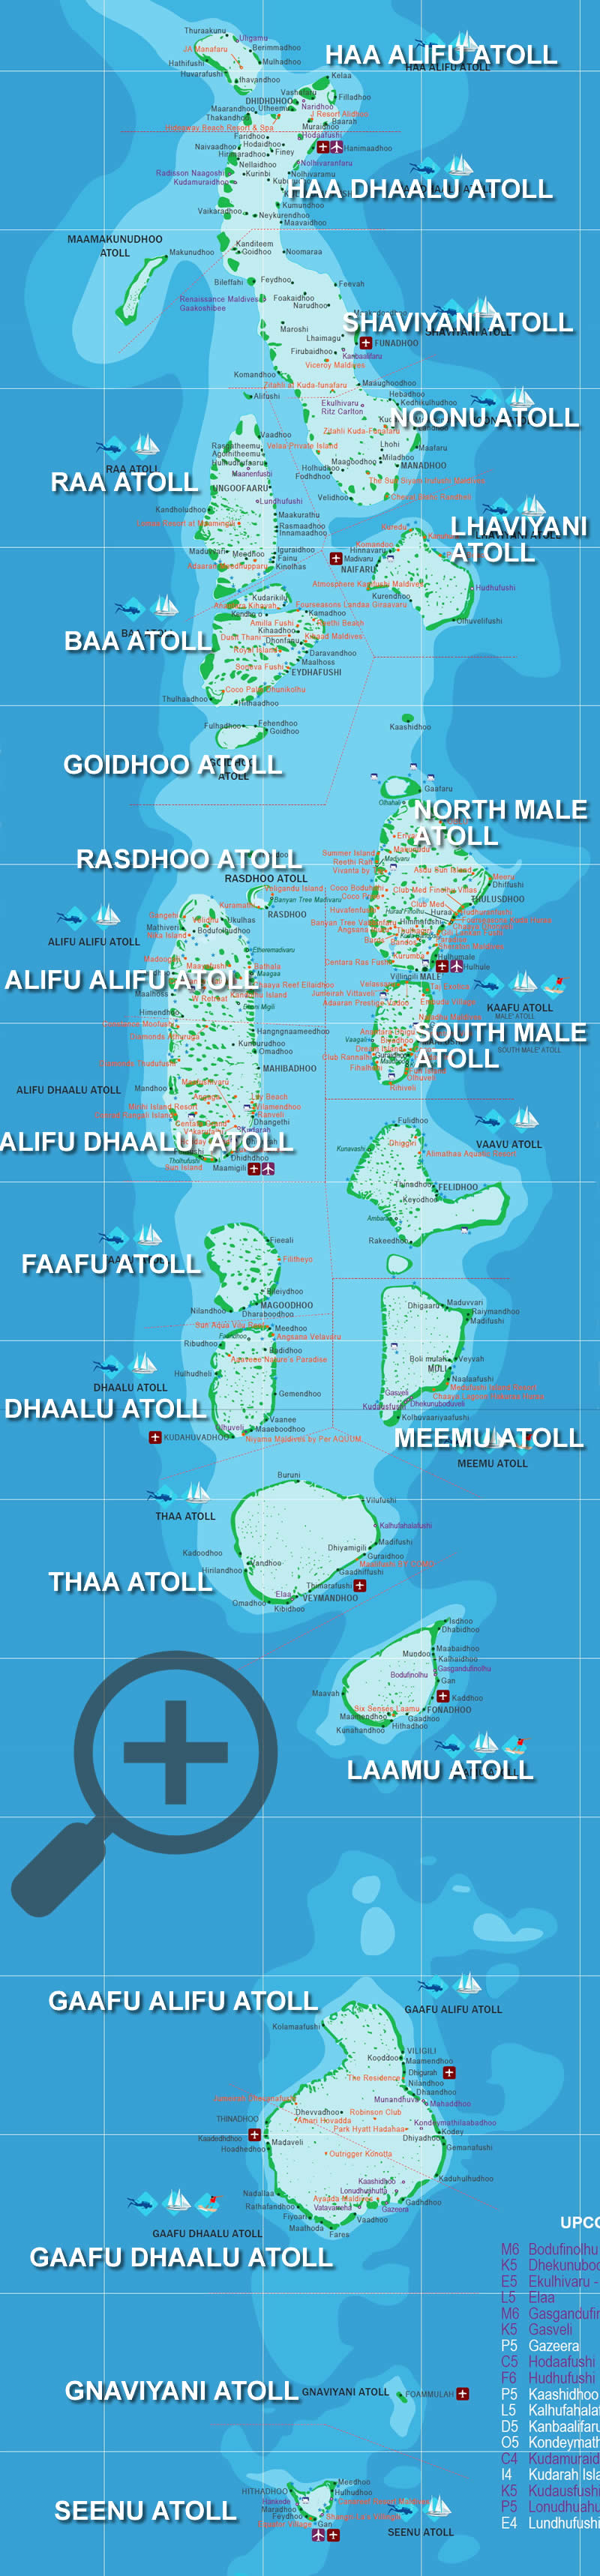 Maldives Maps Maldives Map With Resorts Guesthouses and Local Islands